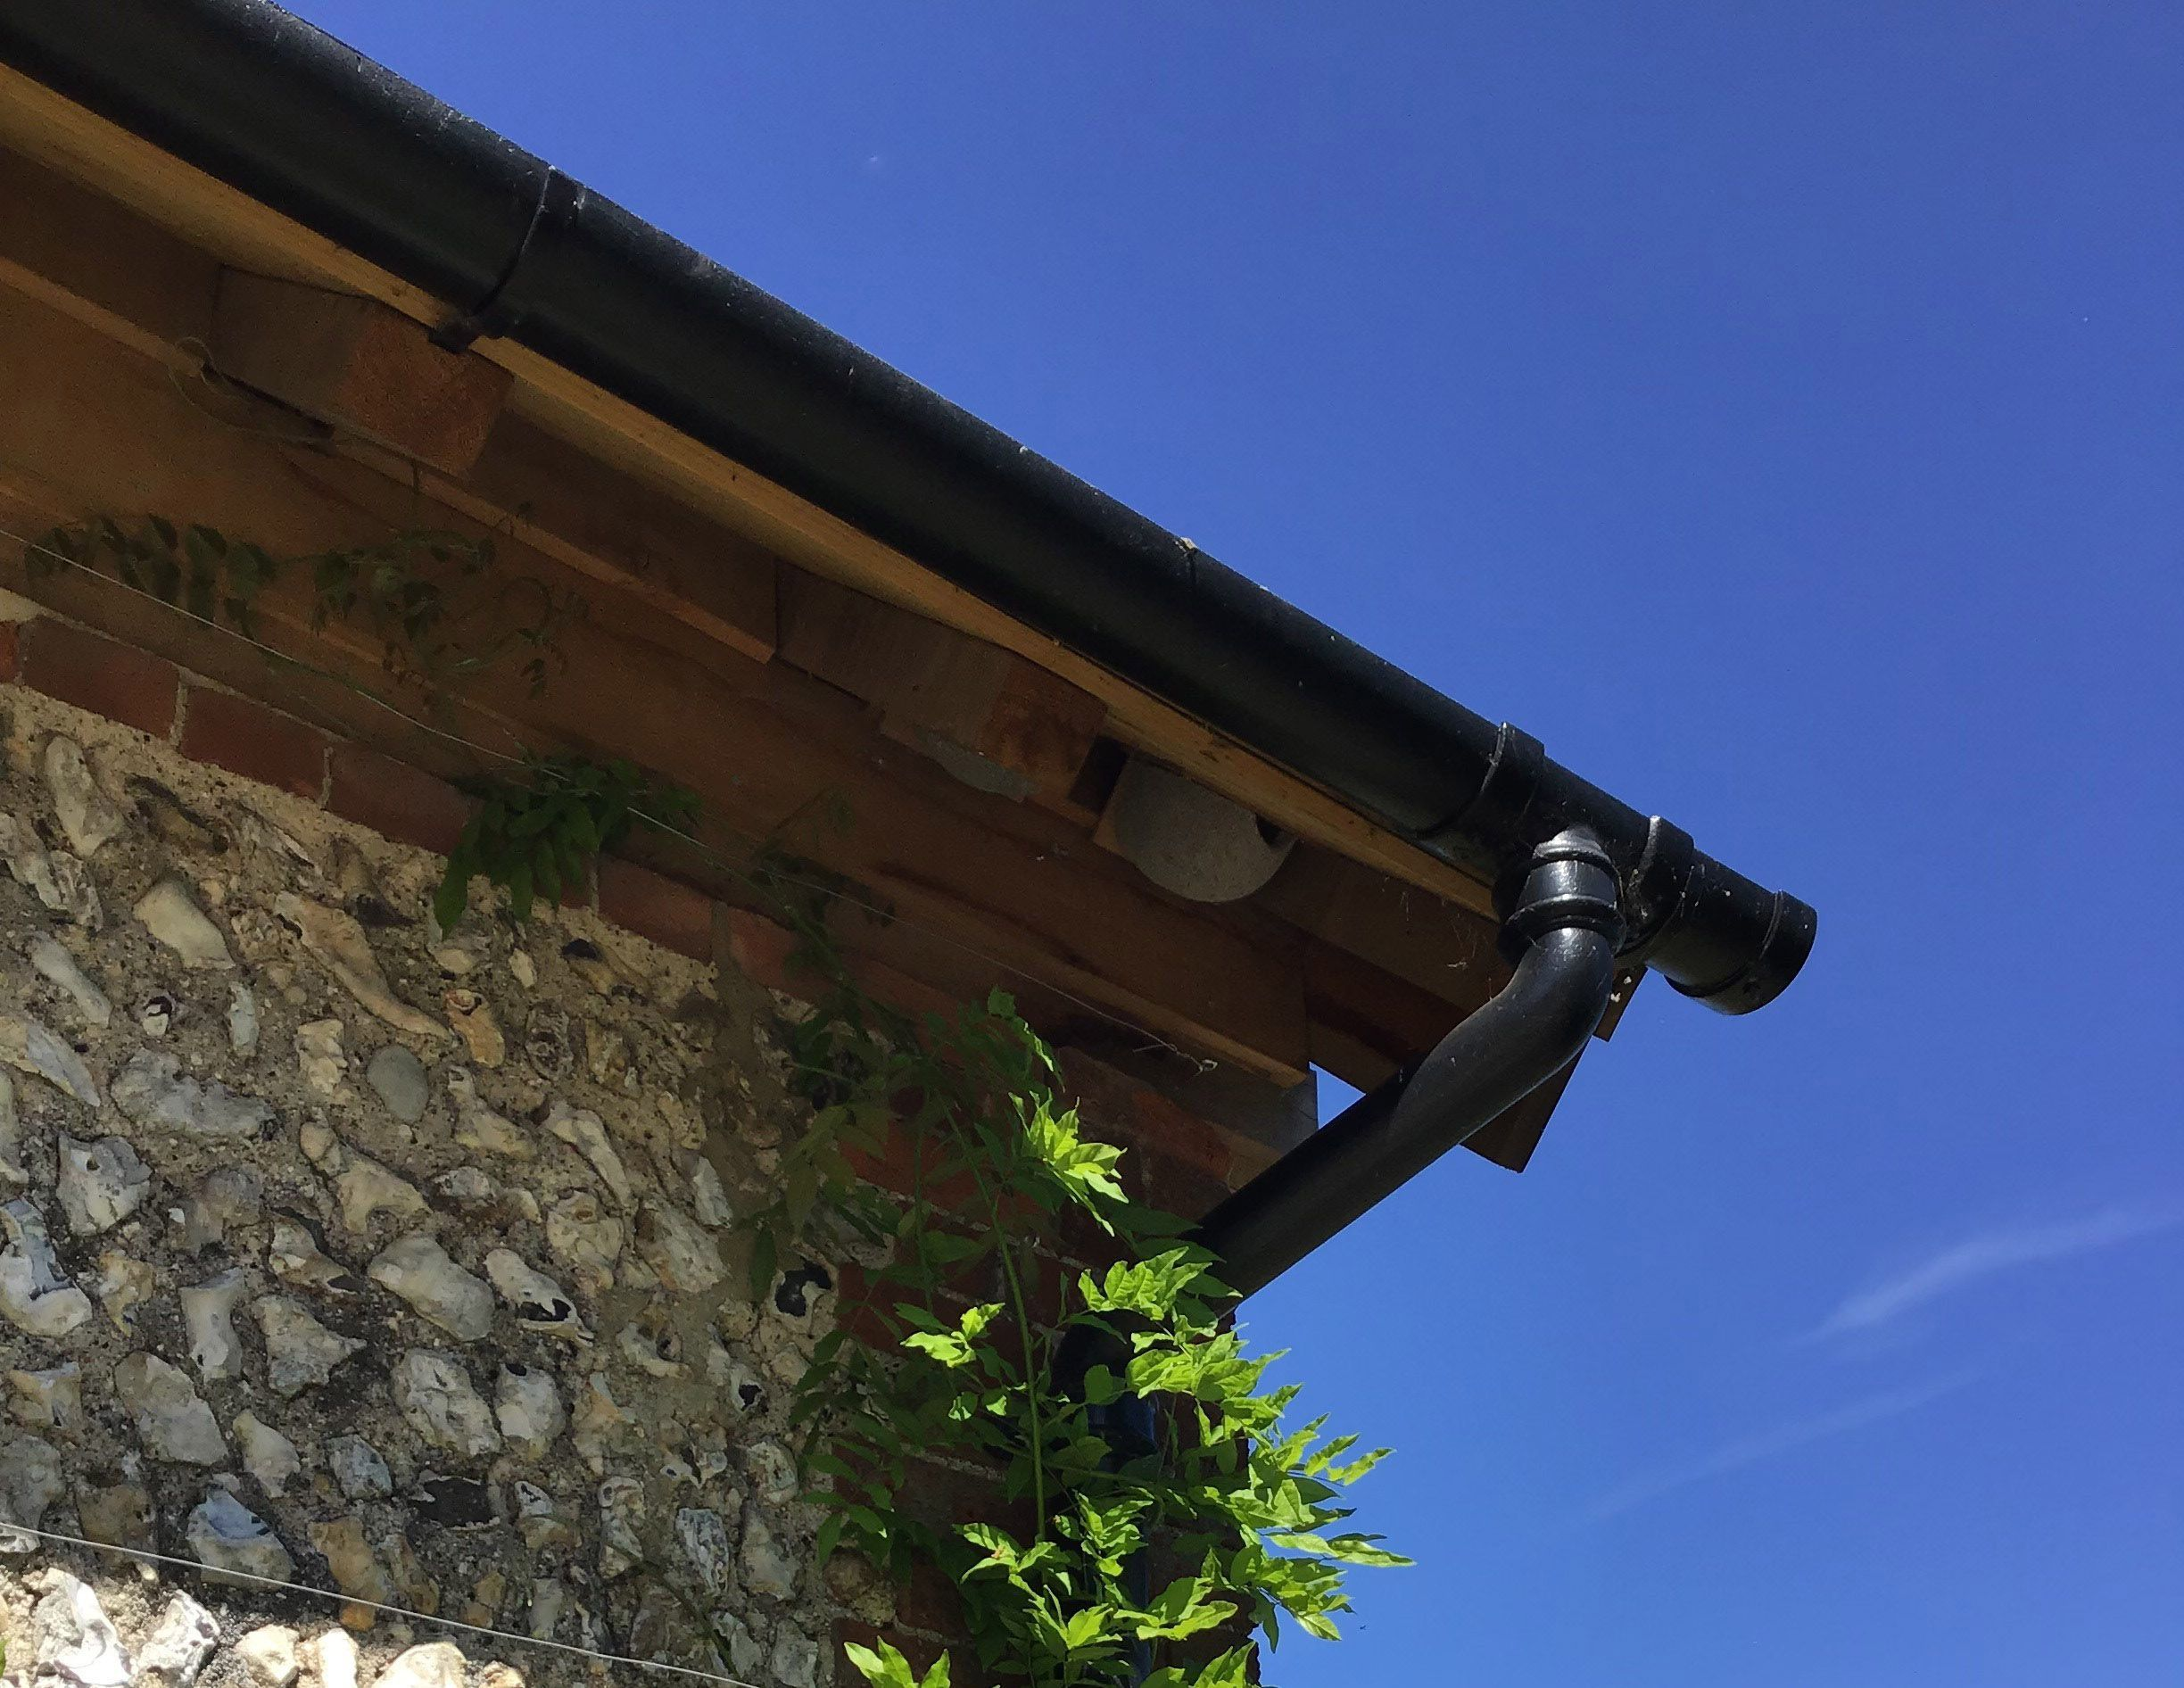 A Beautiful Example Of Cast Iron Guttering Top Fix Rafter Brackets Outlet Offset And Downpipe On A Stunning Blue Blue Sky Background Water Systems Cast Iron